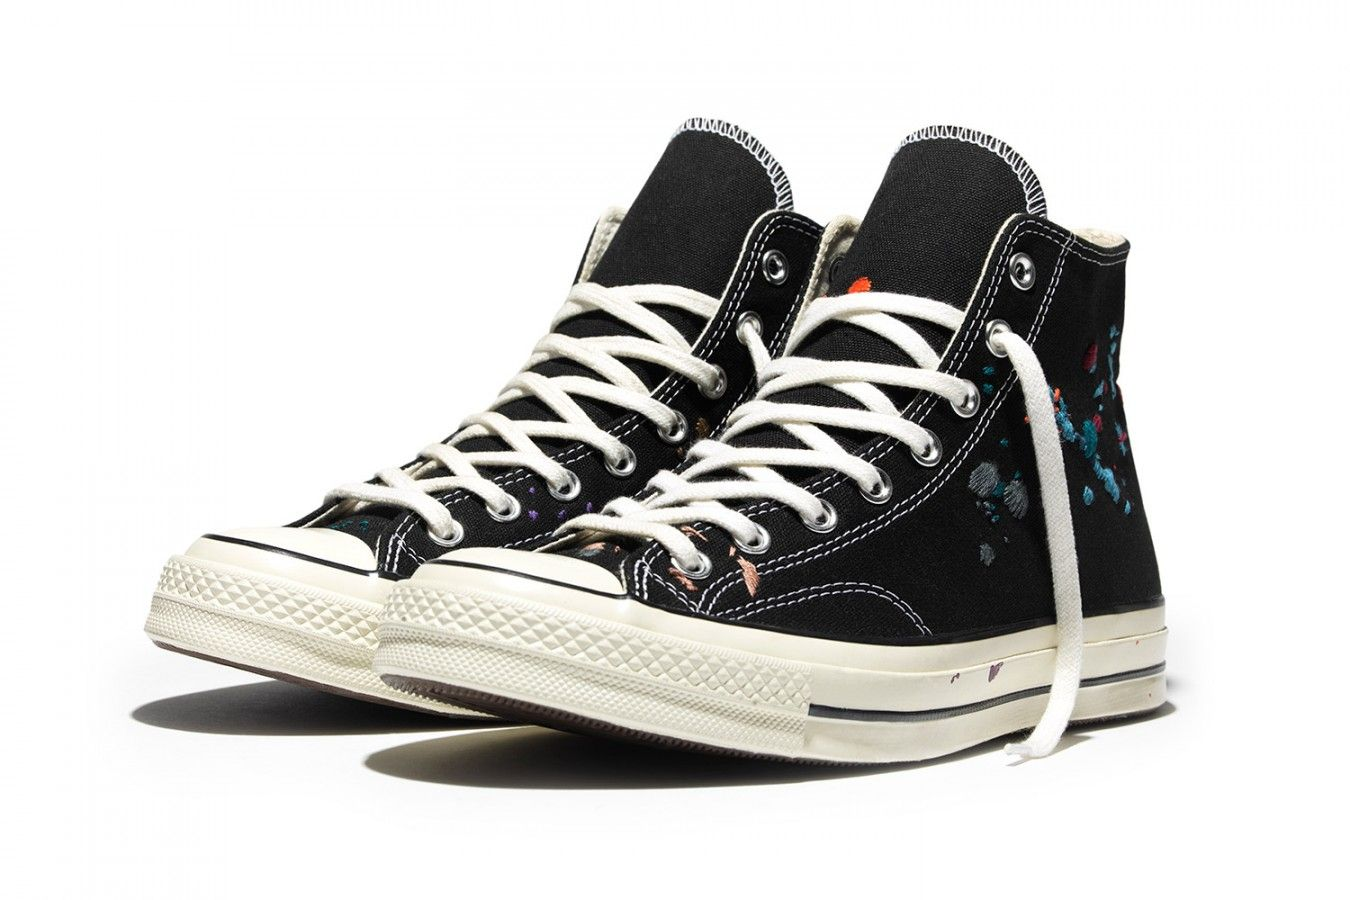 2d5197e5e2e3ab Converse and Boston-based brand Bandulu have joined forces to craft a  unique